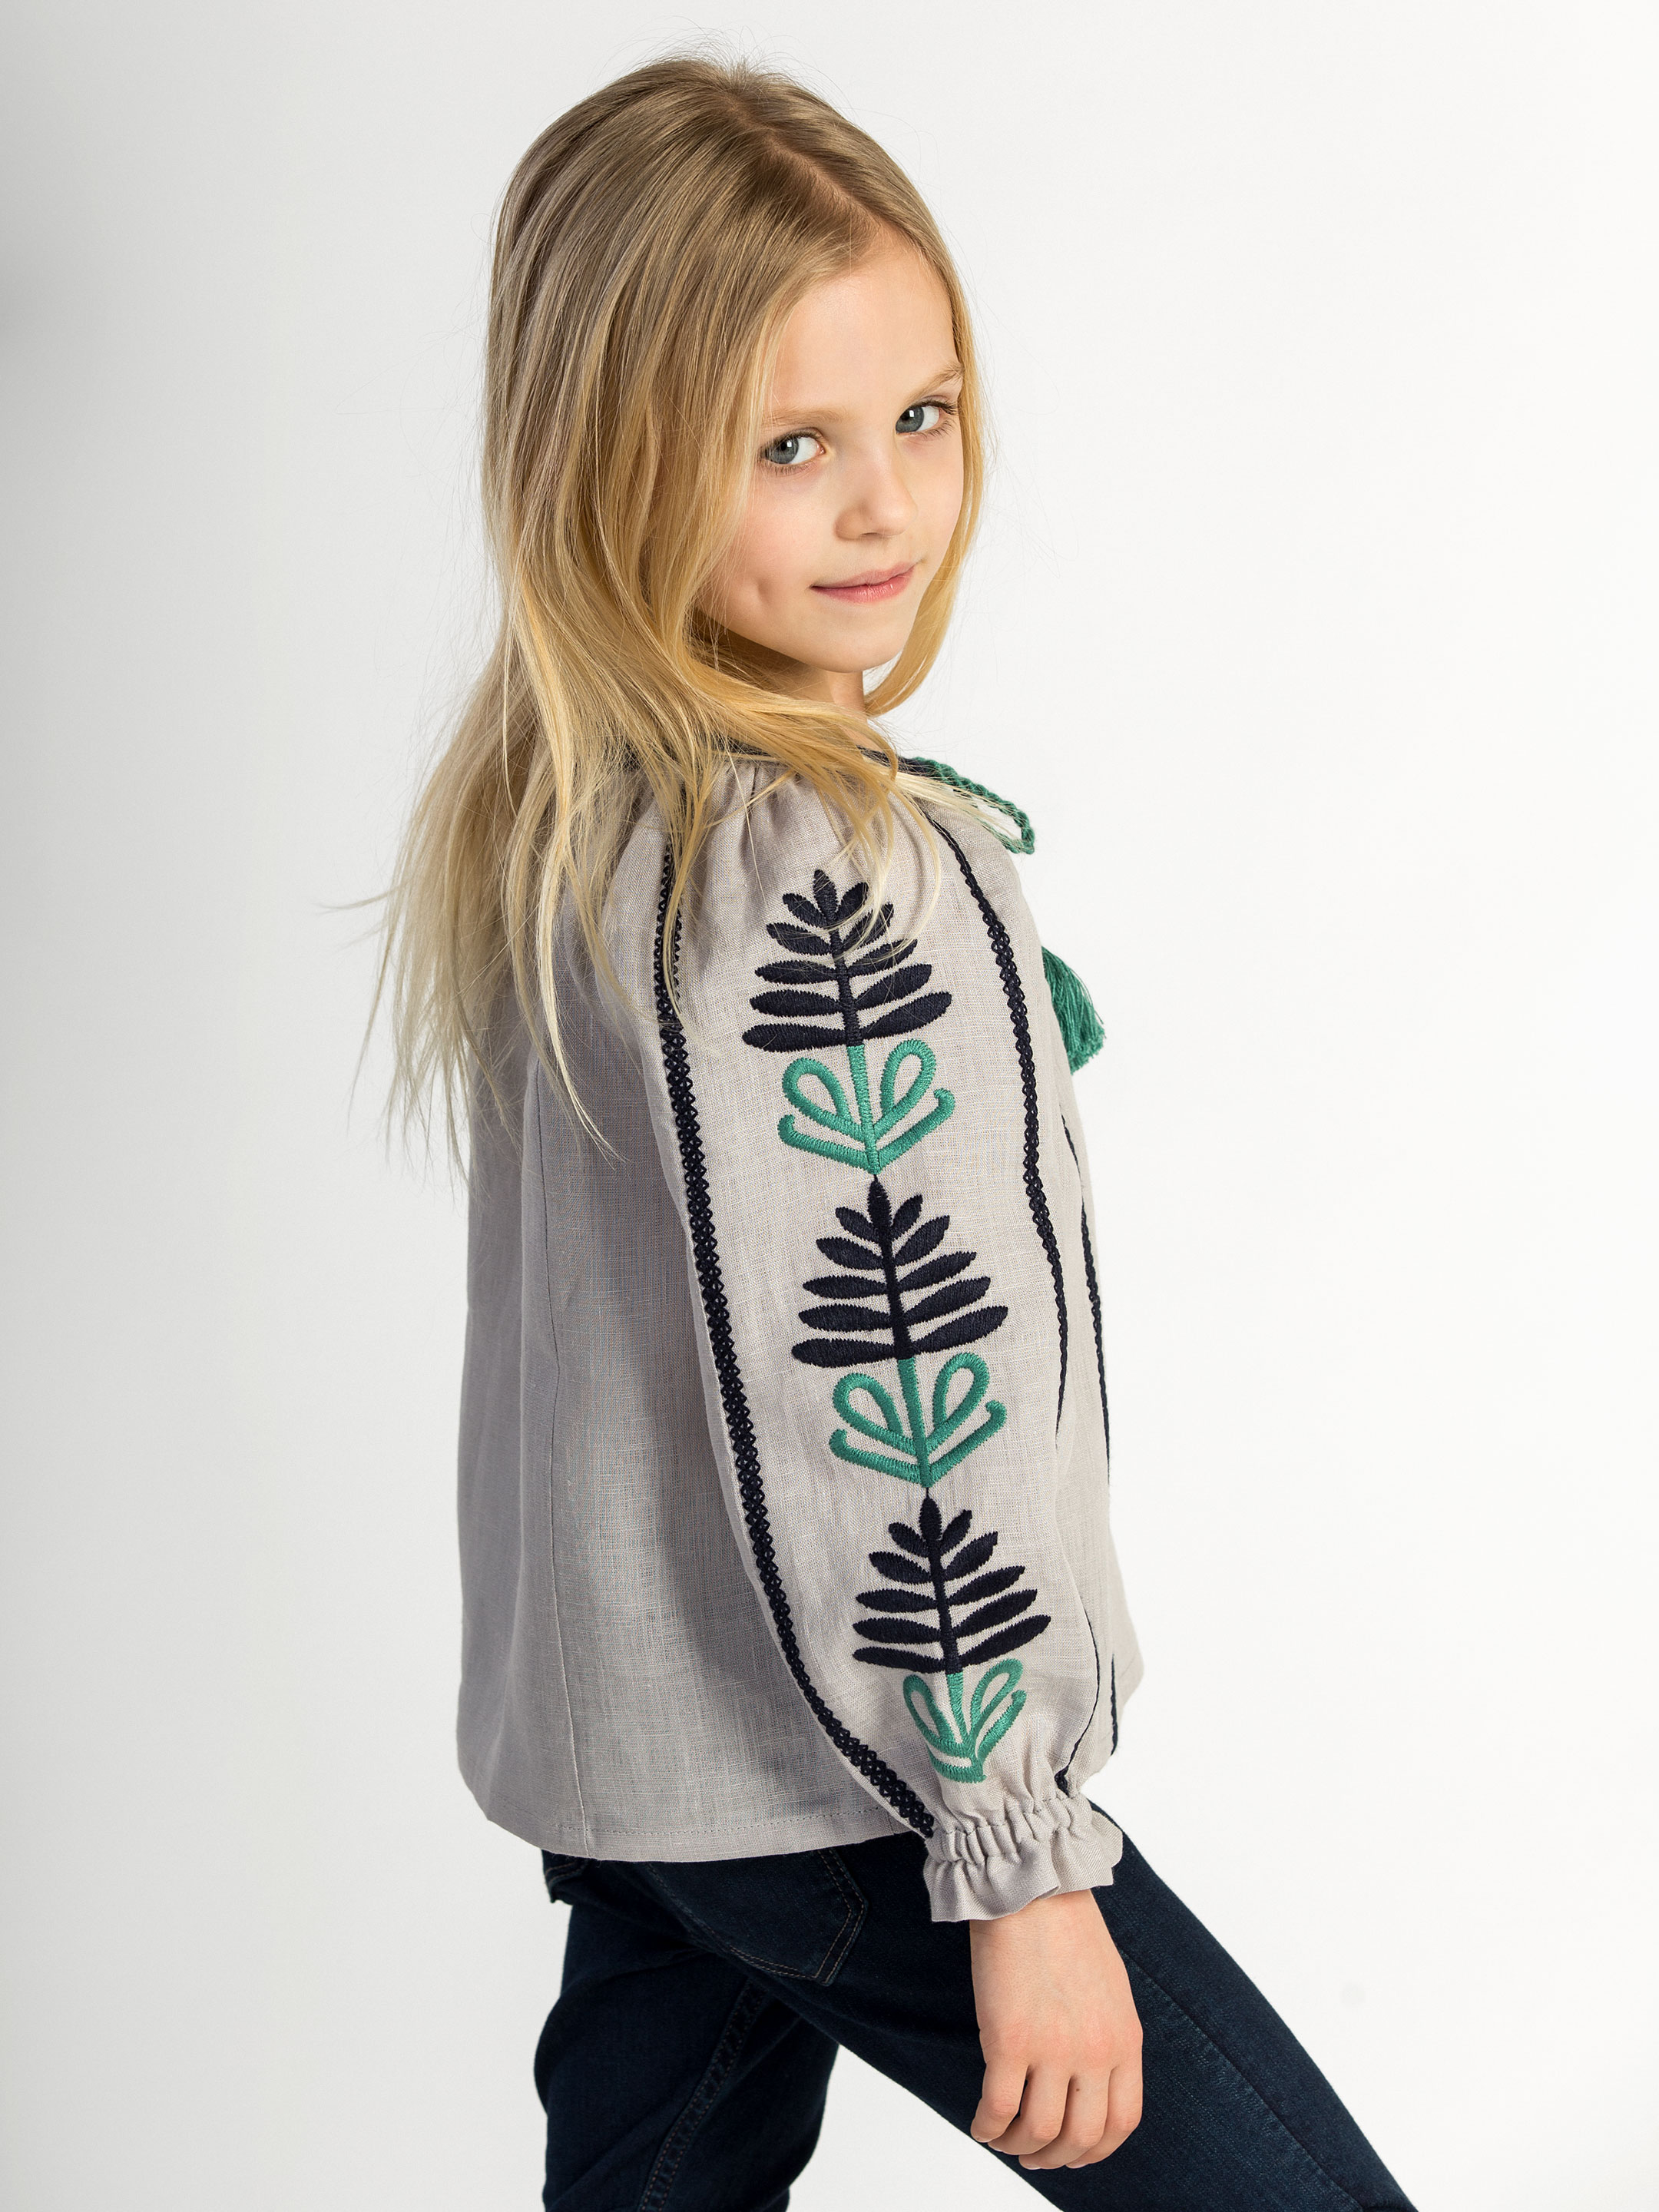 Embroidered shirt for girls Bonsai Day Kids 7